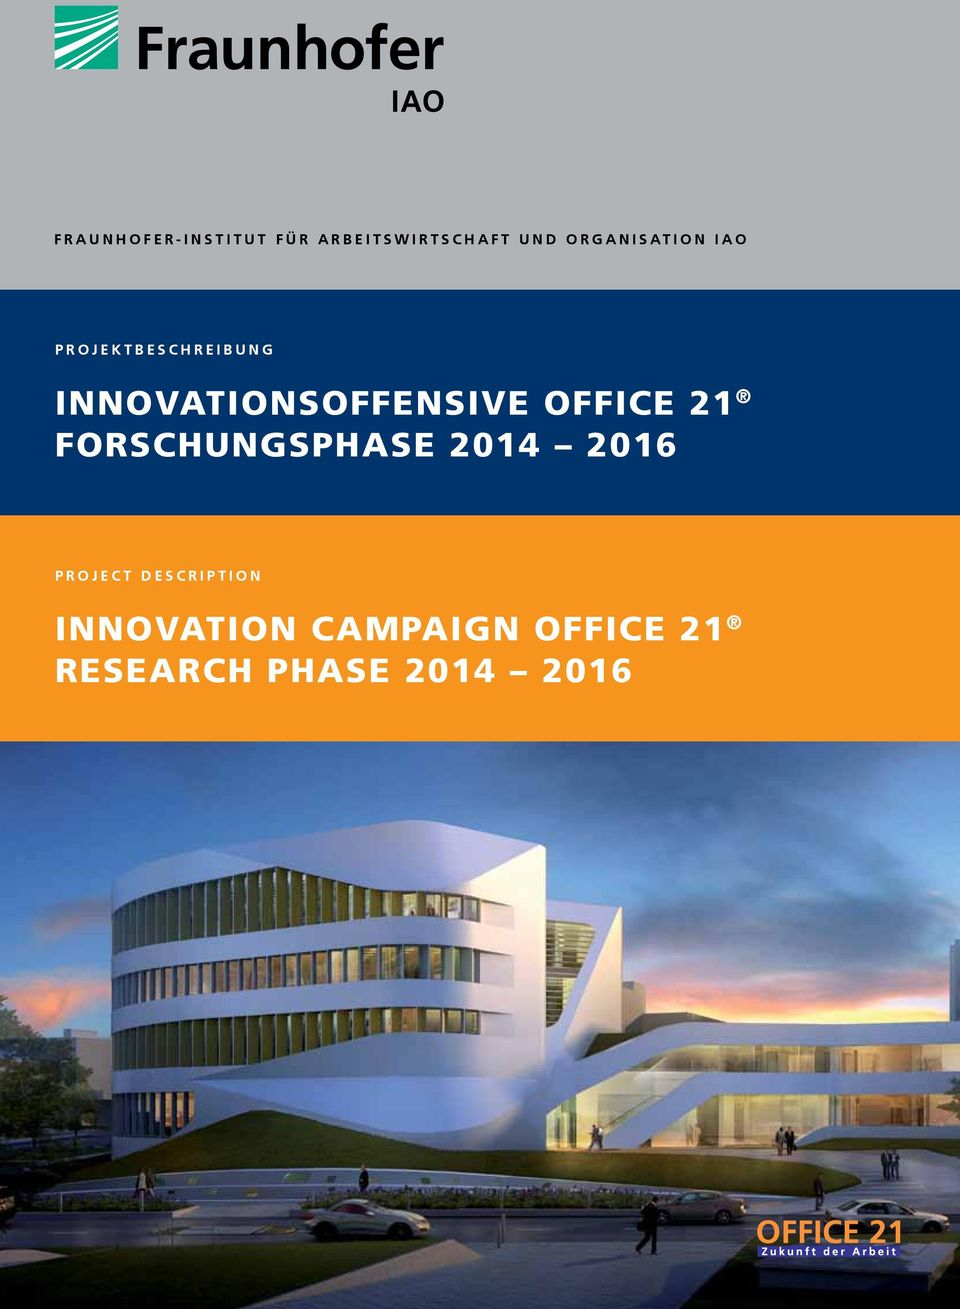 INNOVATIONSOFFENSIVE OFFICE 21 Forschungsphase 2014